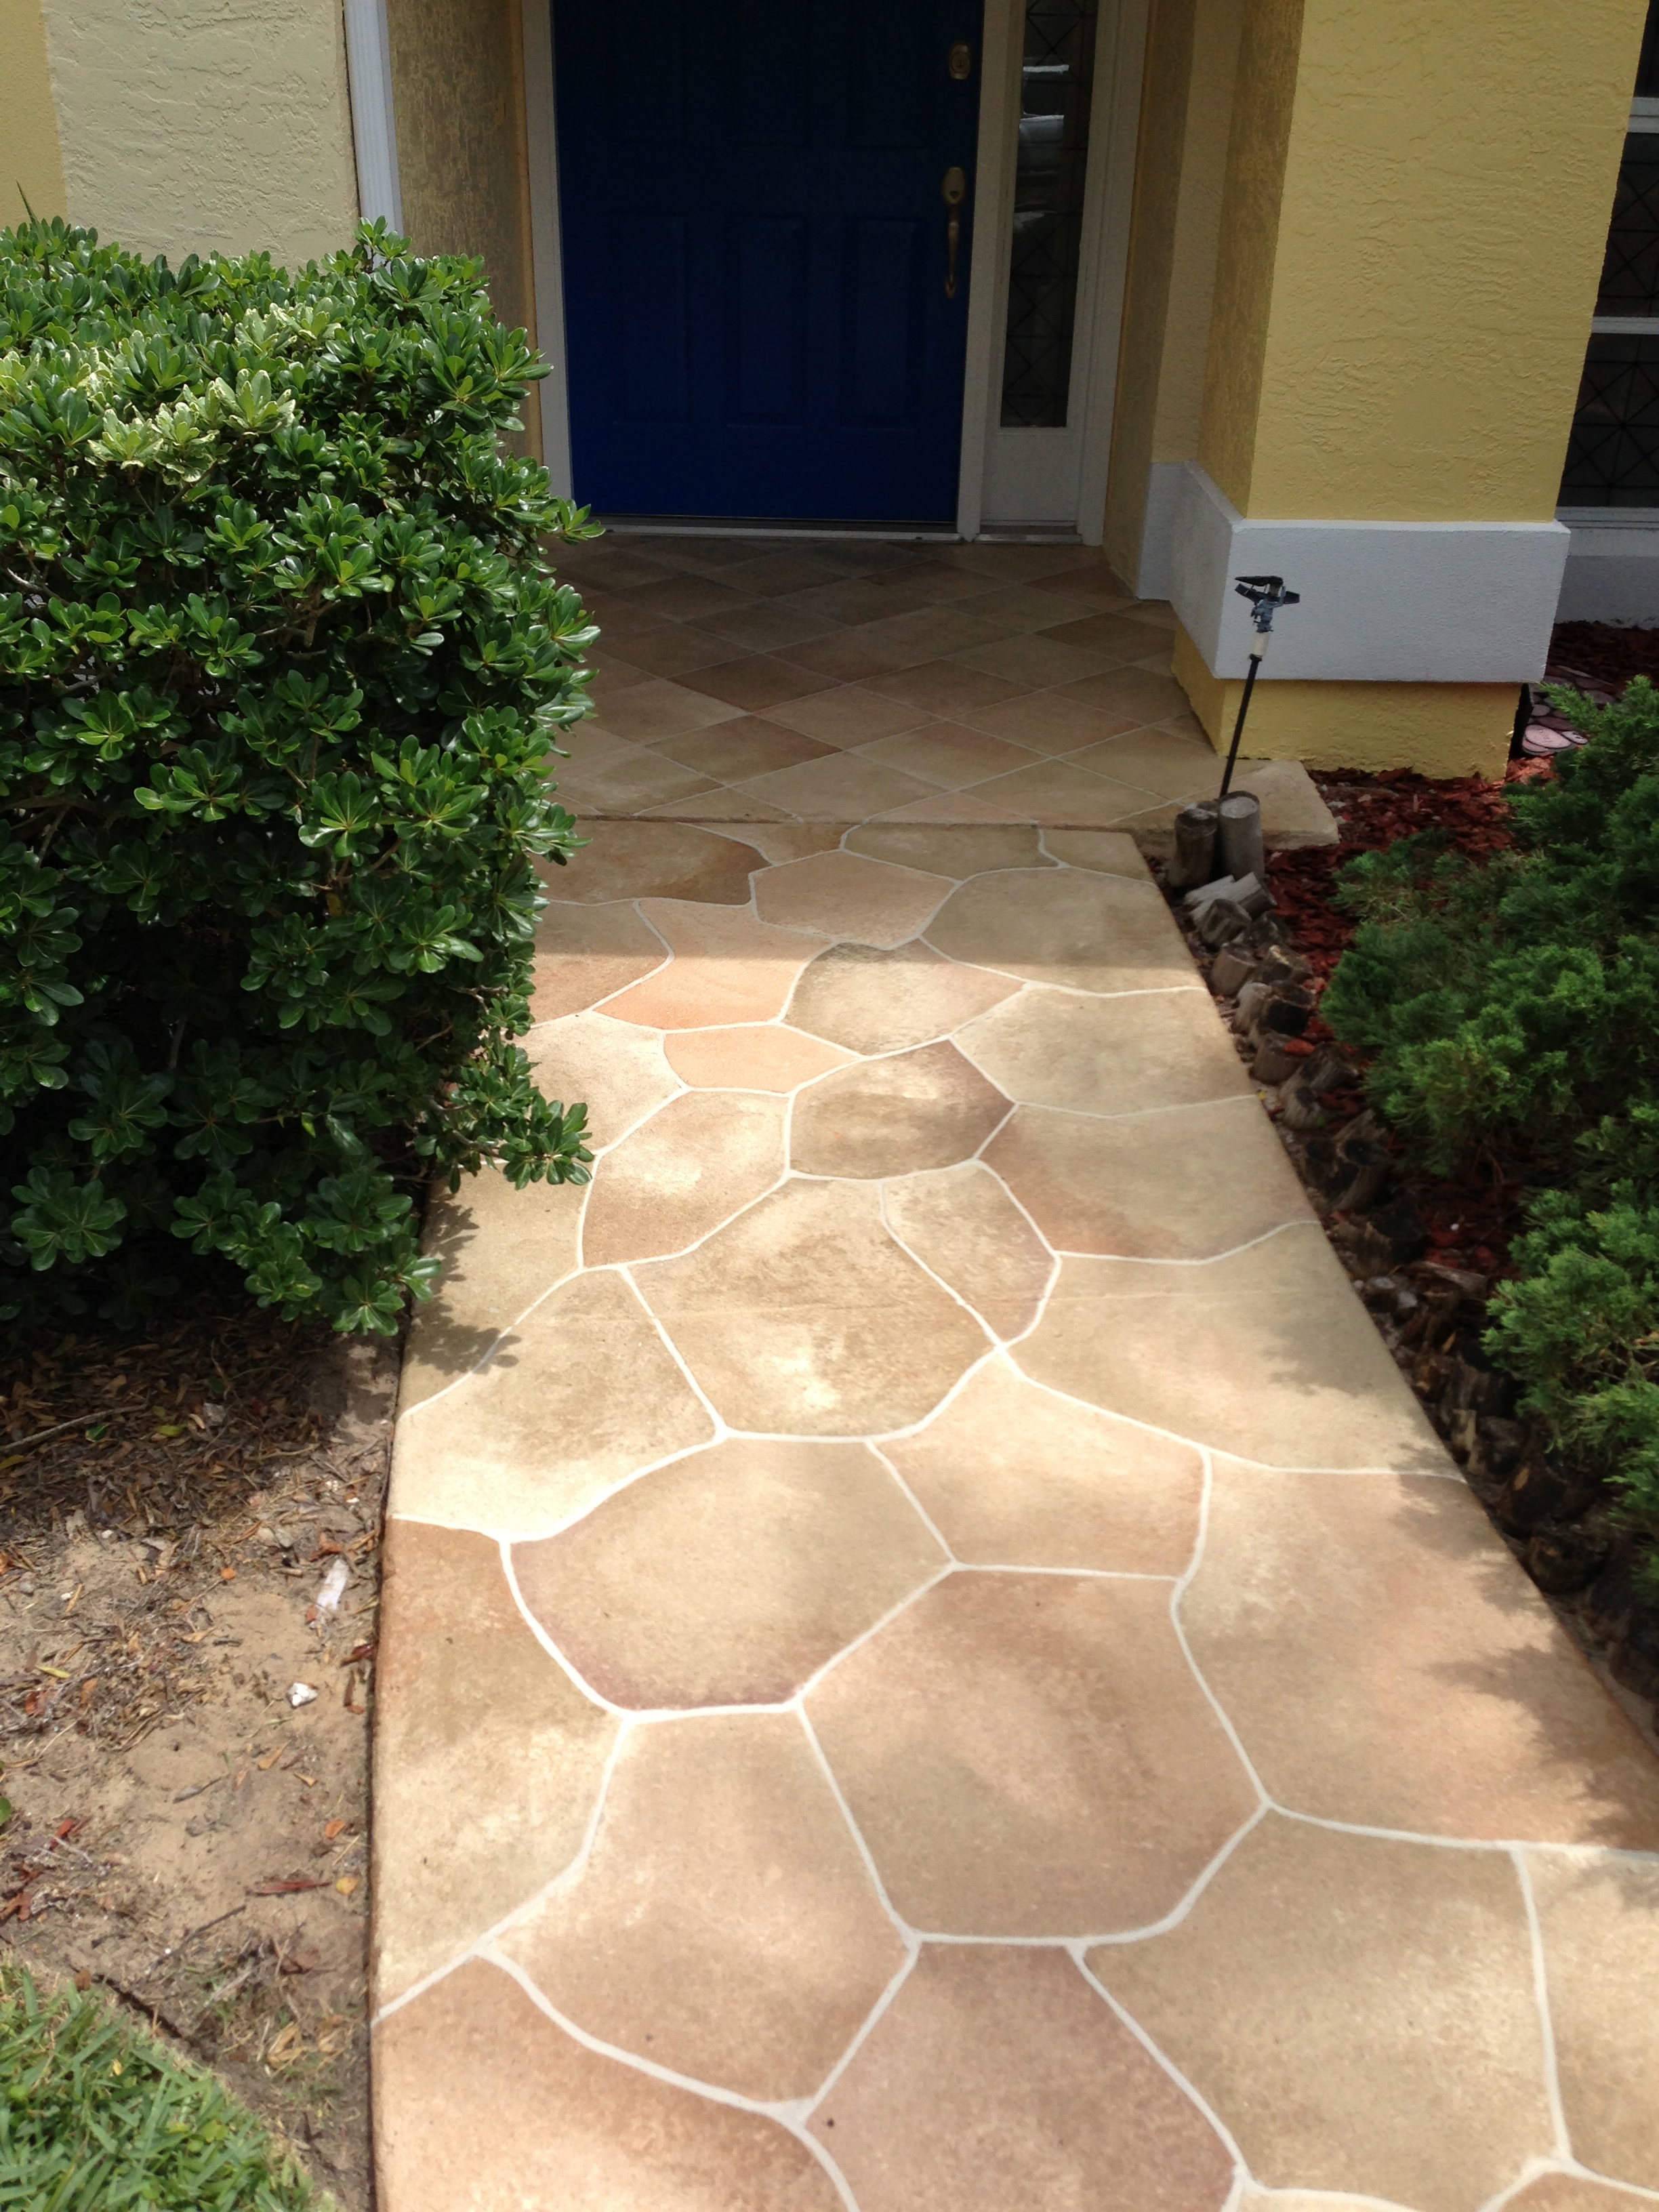 Concrete Designs Florida New Flagstone And Tile Entryway